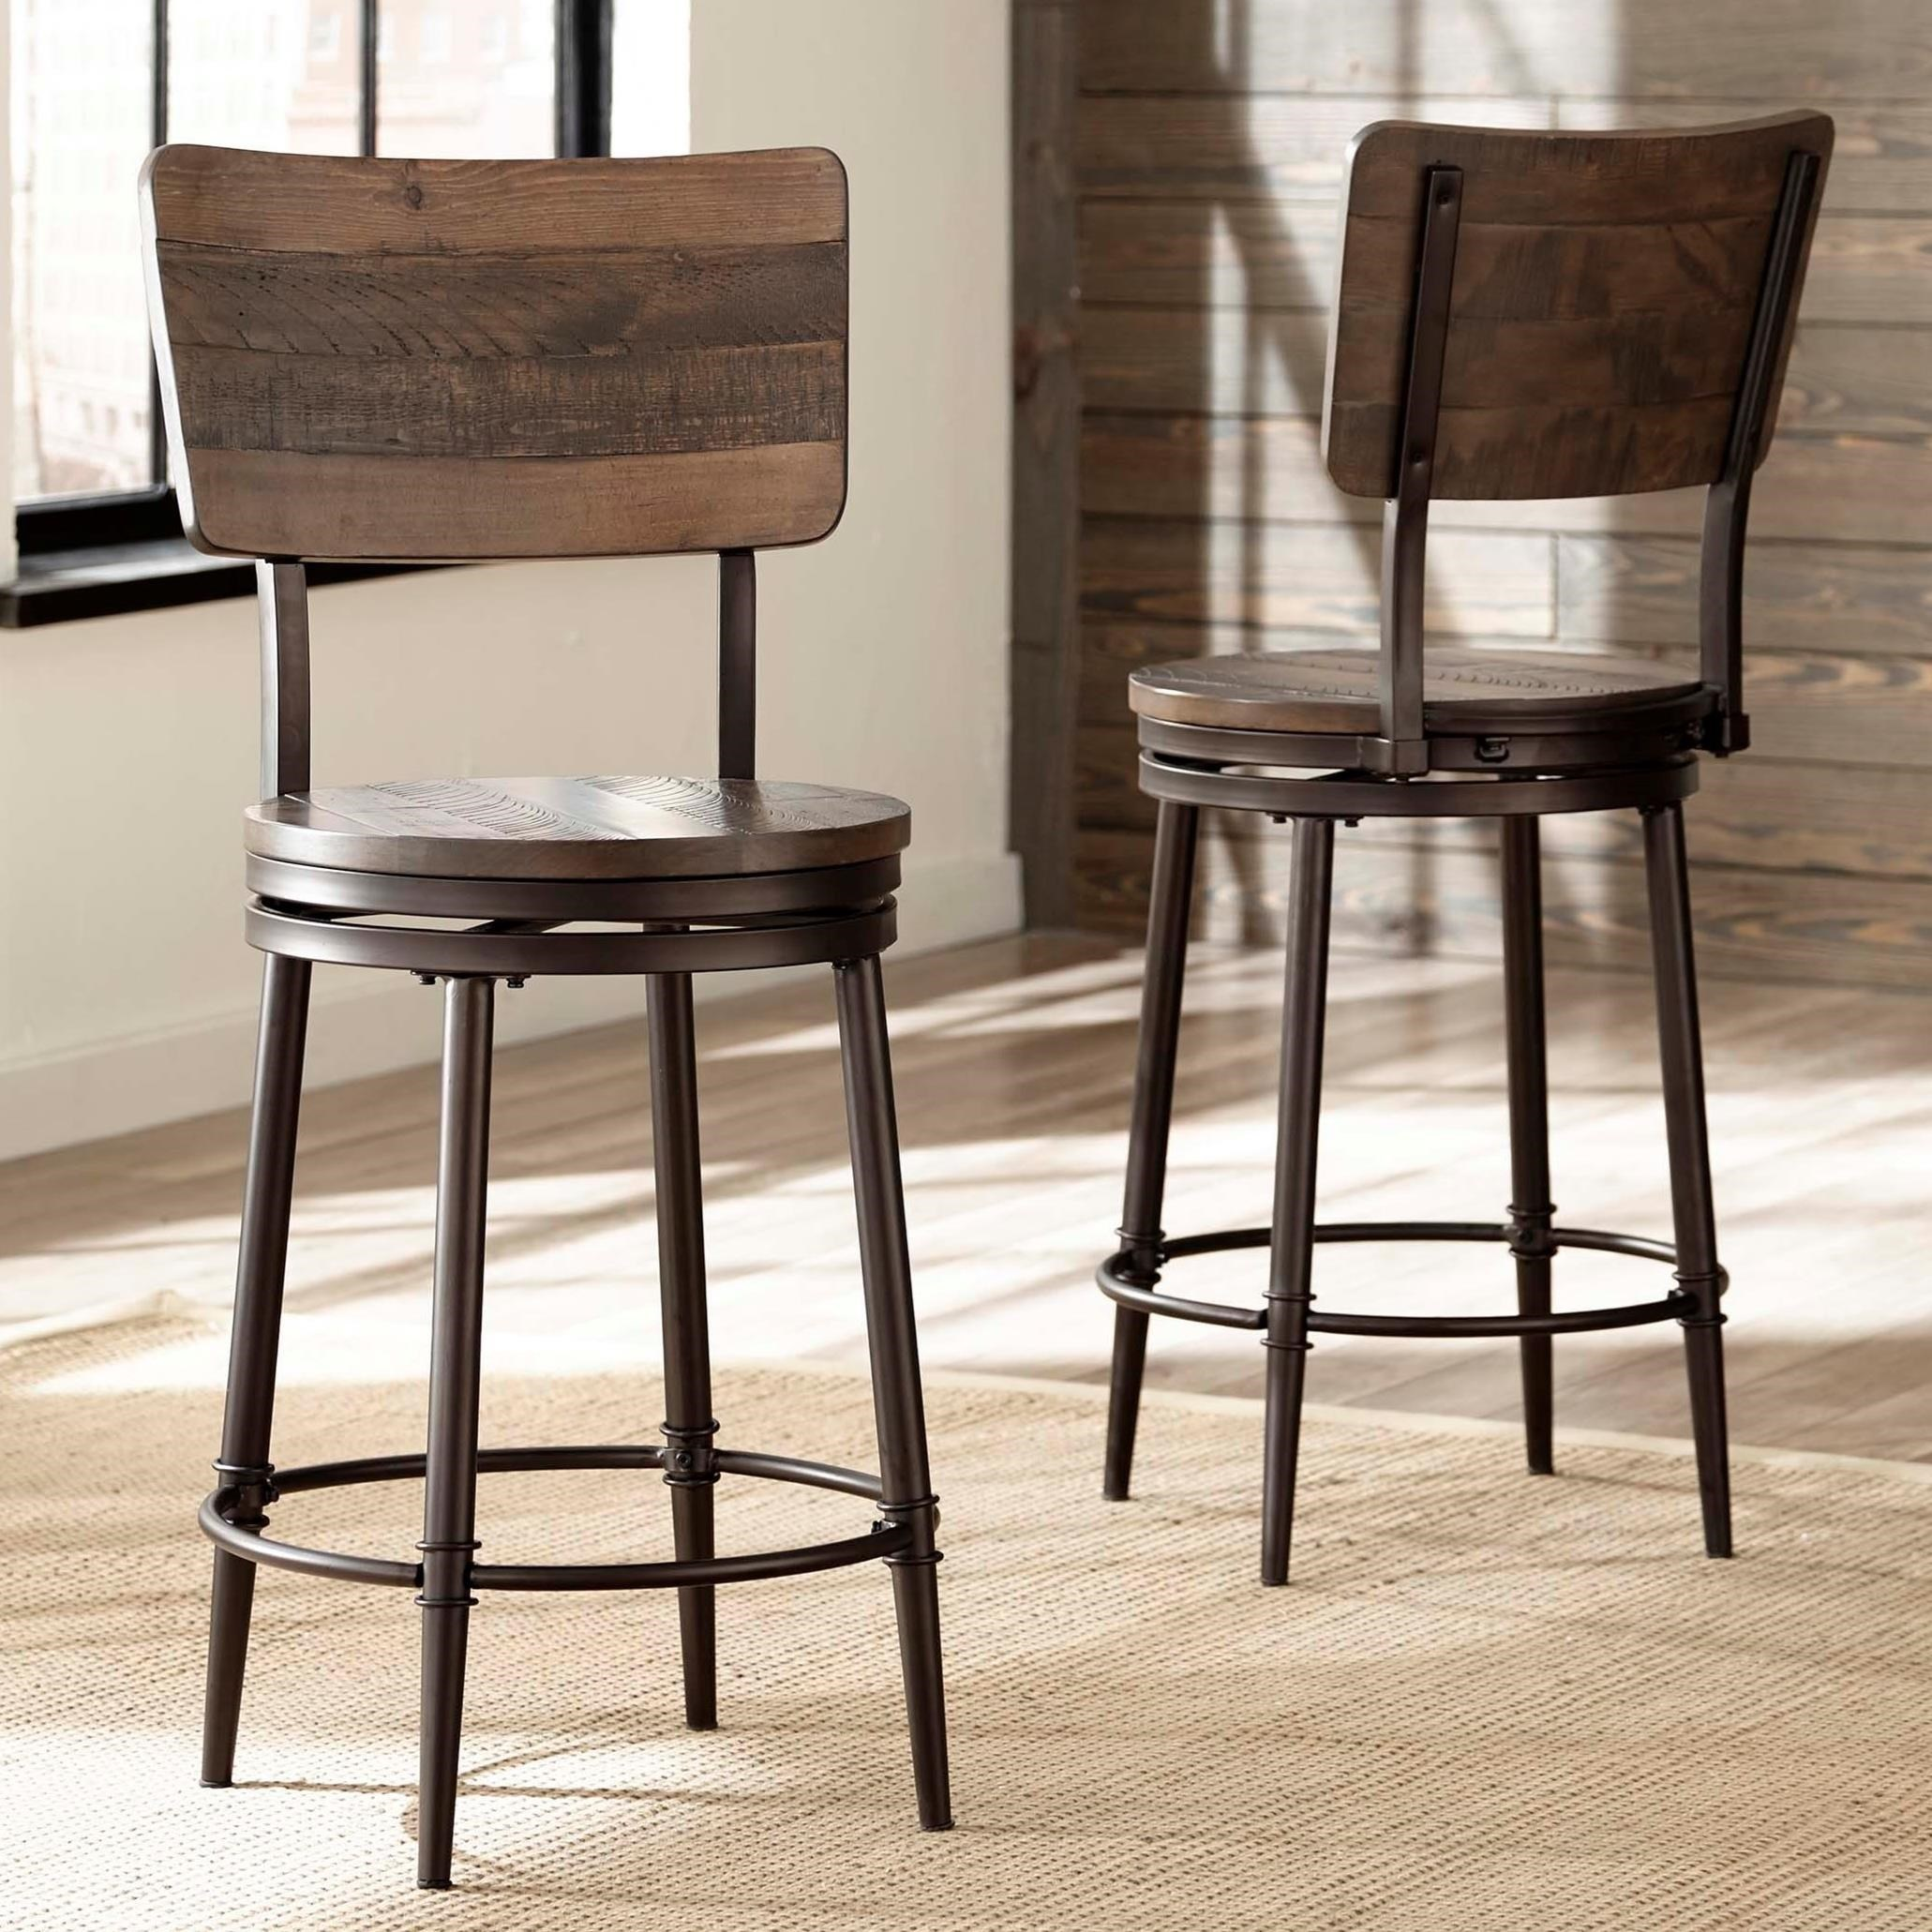 Hillsdale Metal Stools Swivel Bar Stool - Item Number: 4022-830